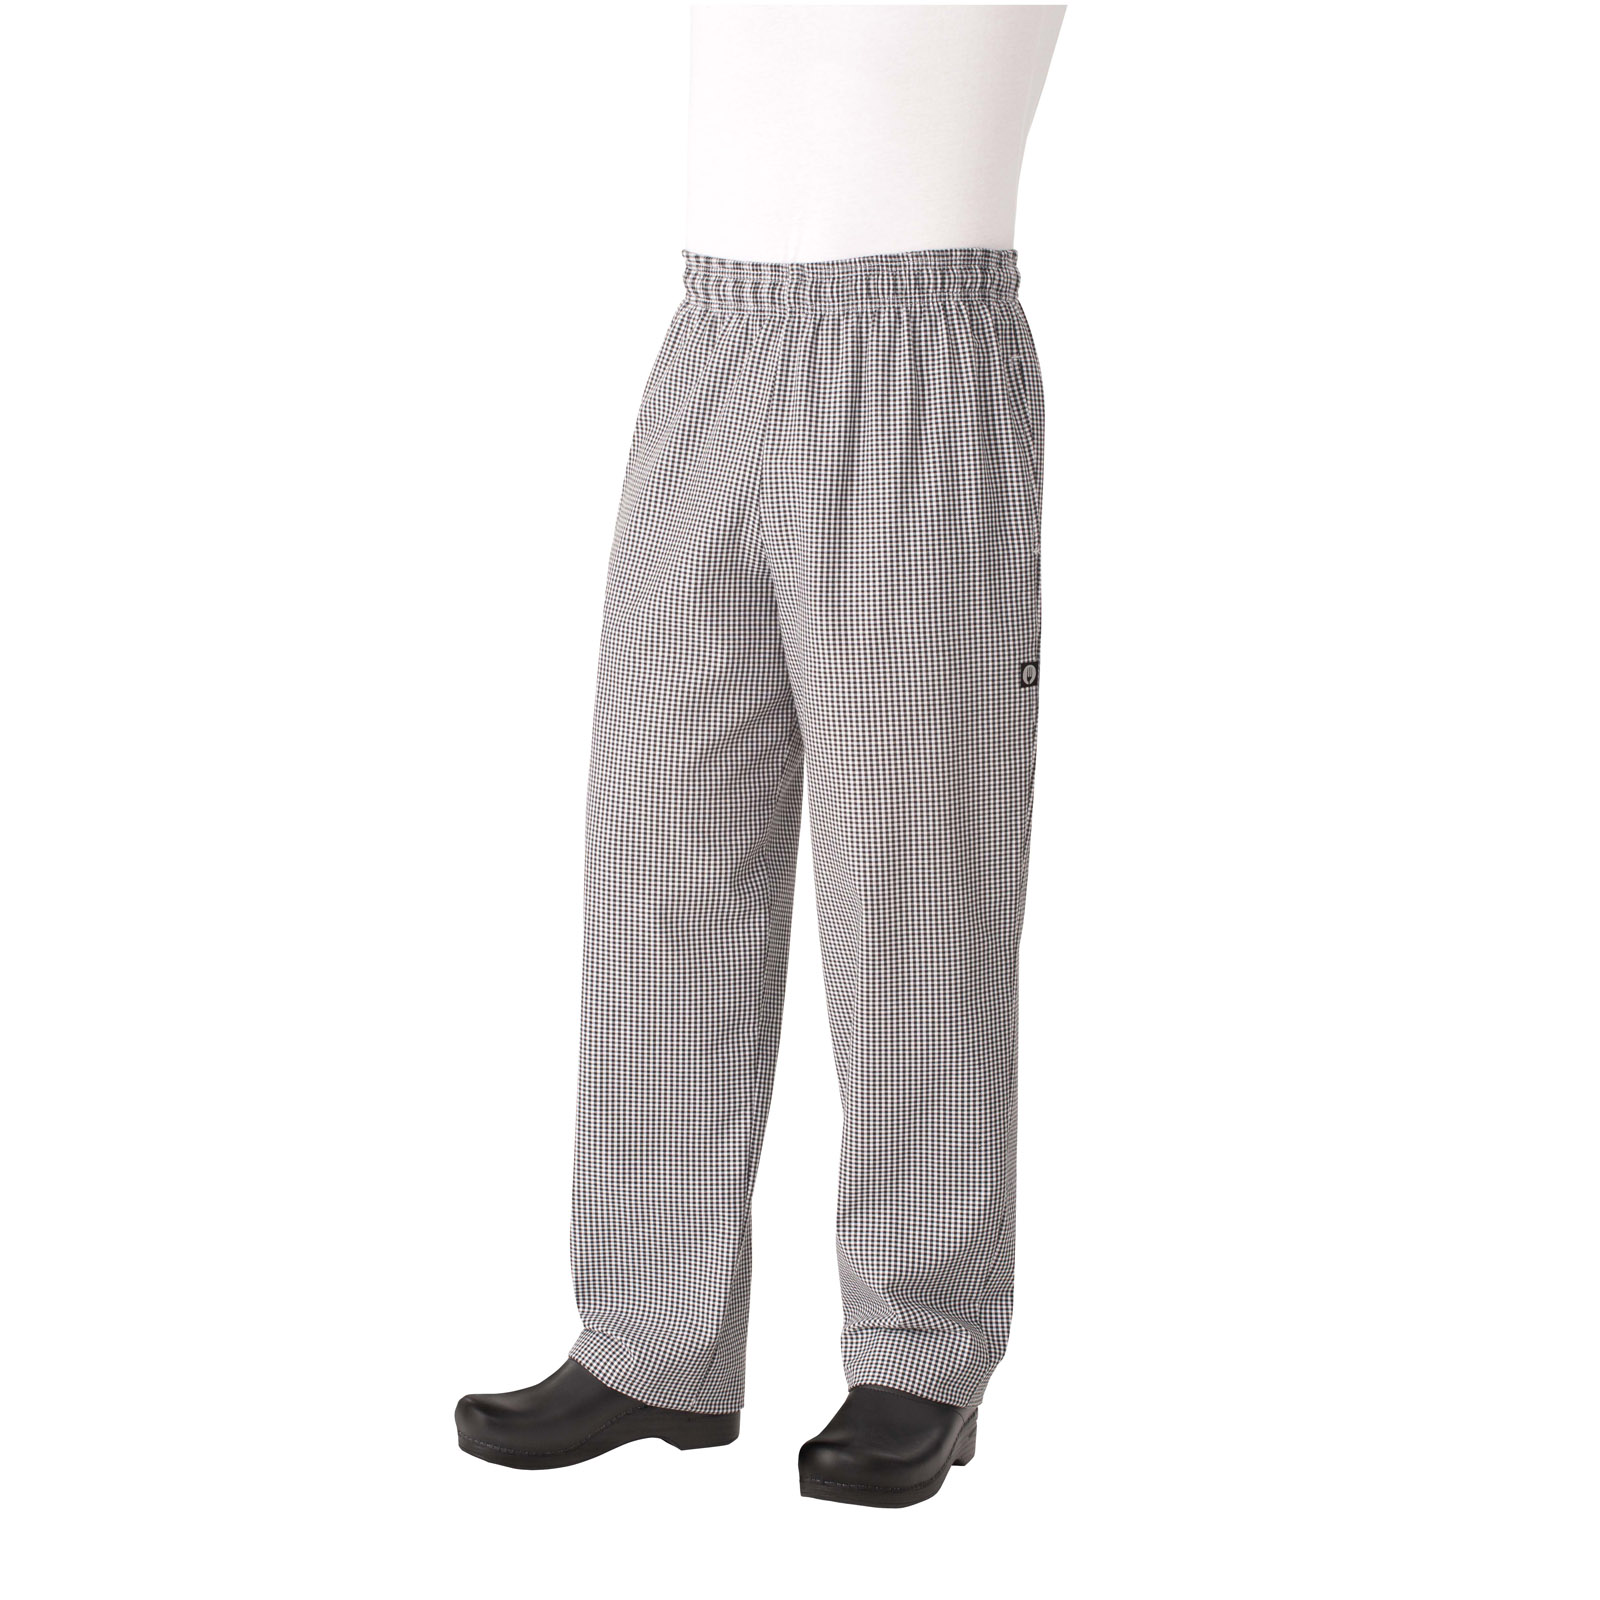 Chef Works NBCP0003XL chef's pants